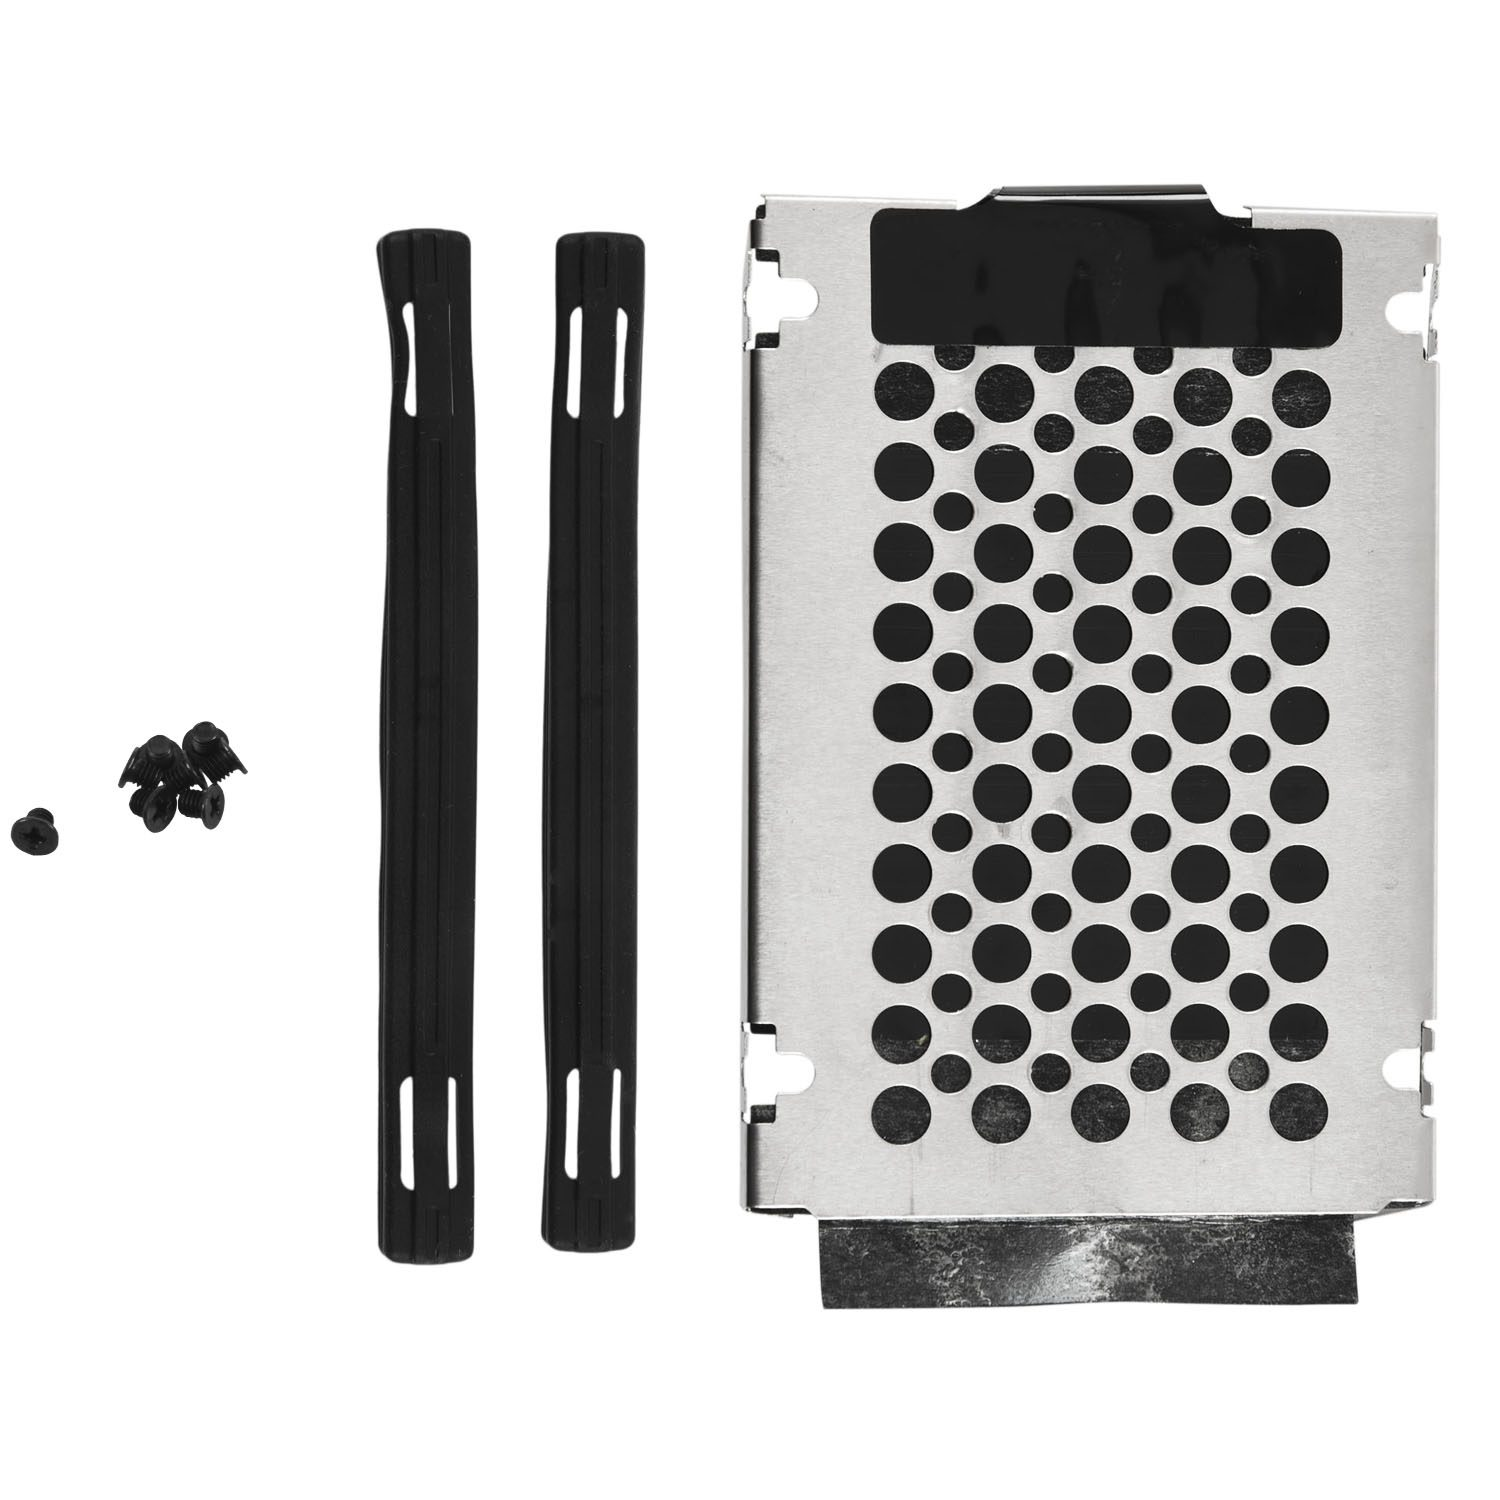 For Thinkpad X220 X230 Hard Drive Frame And 2 Hard Disk Strips 7MM